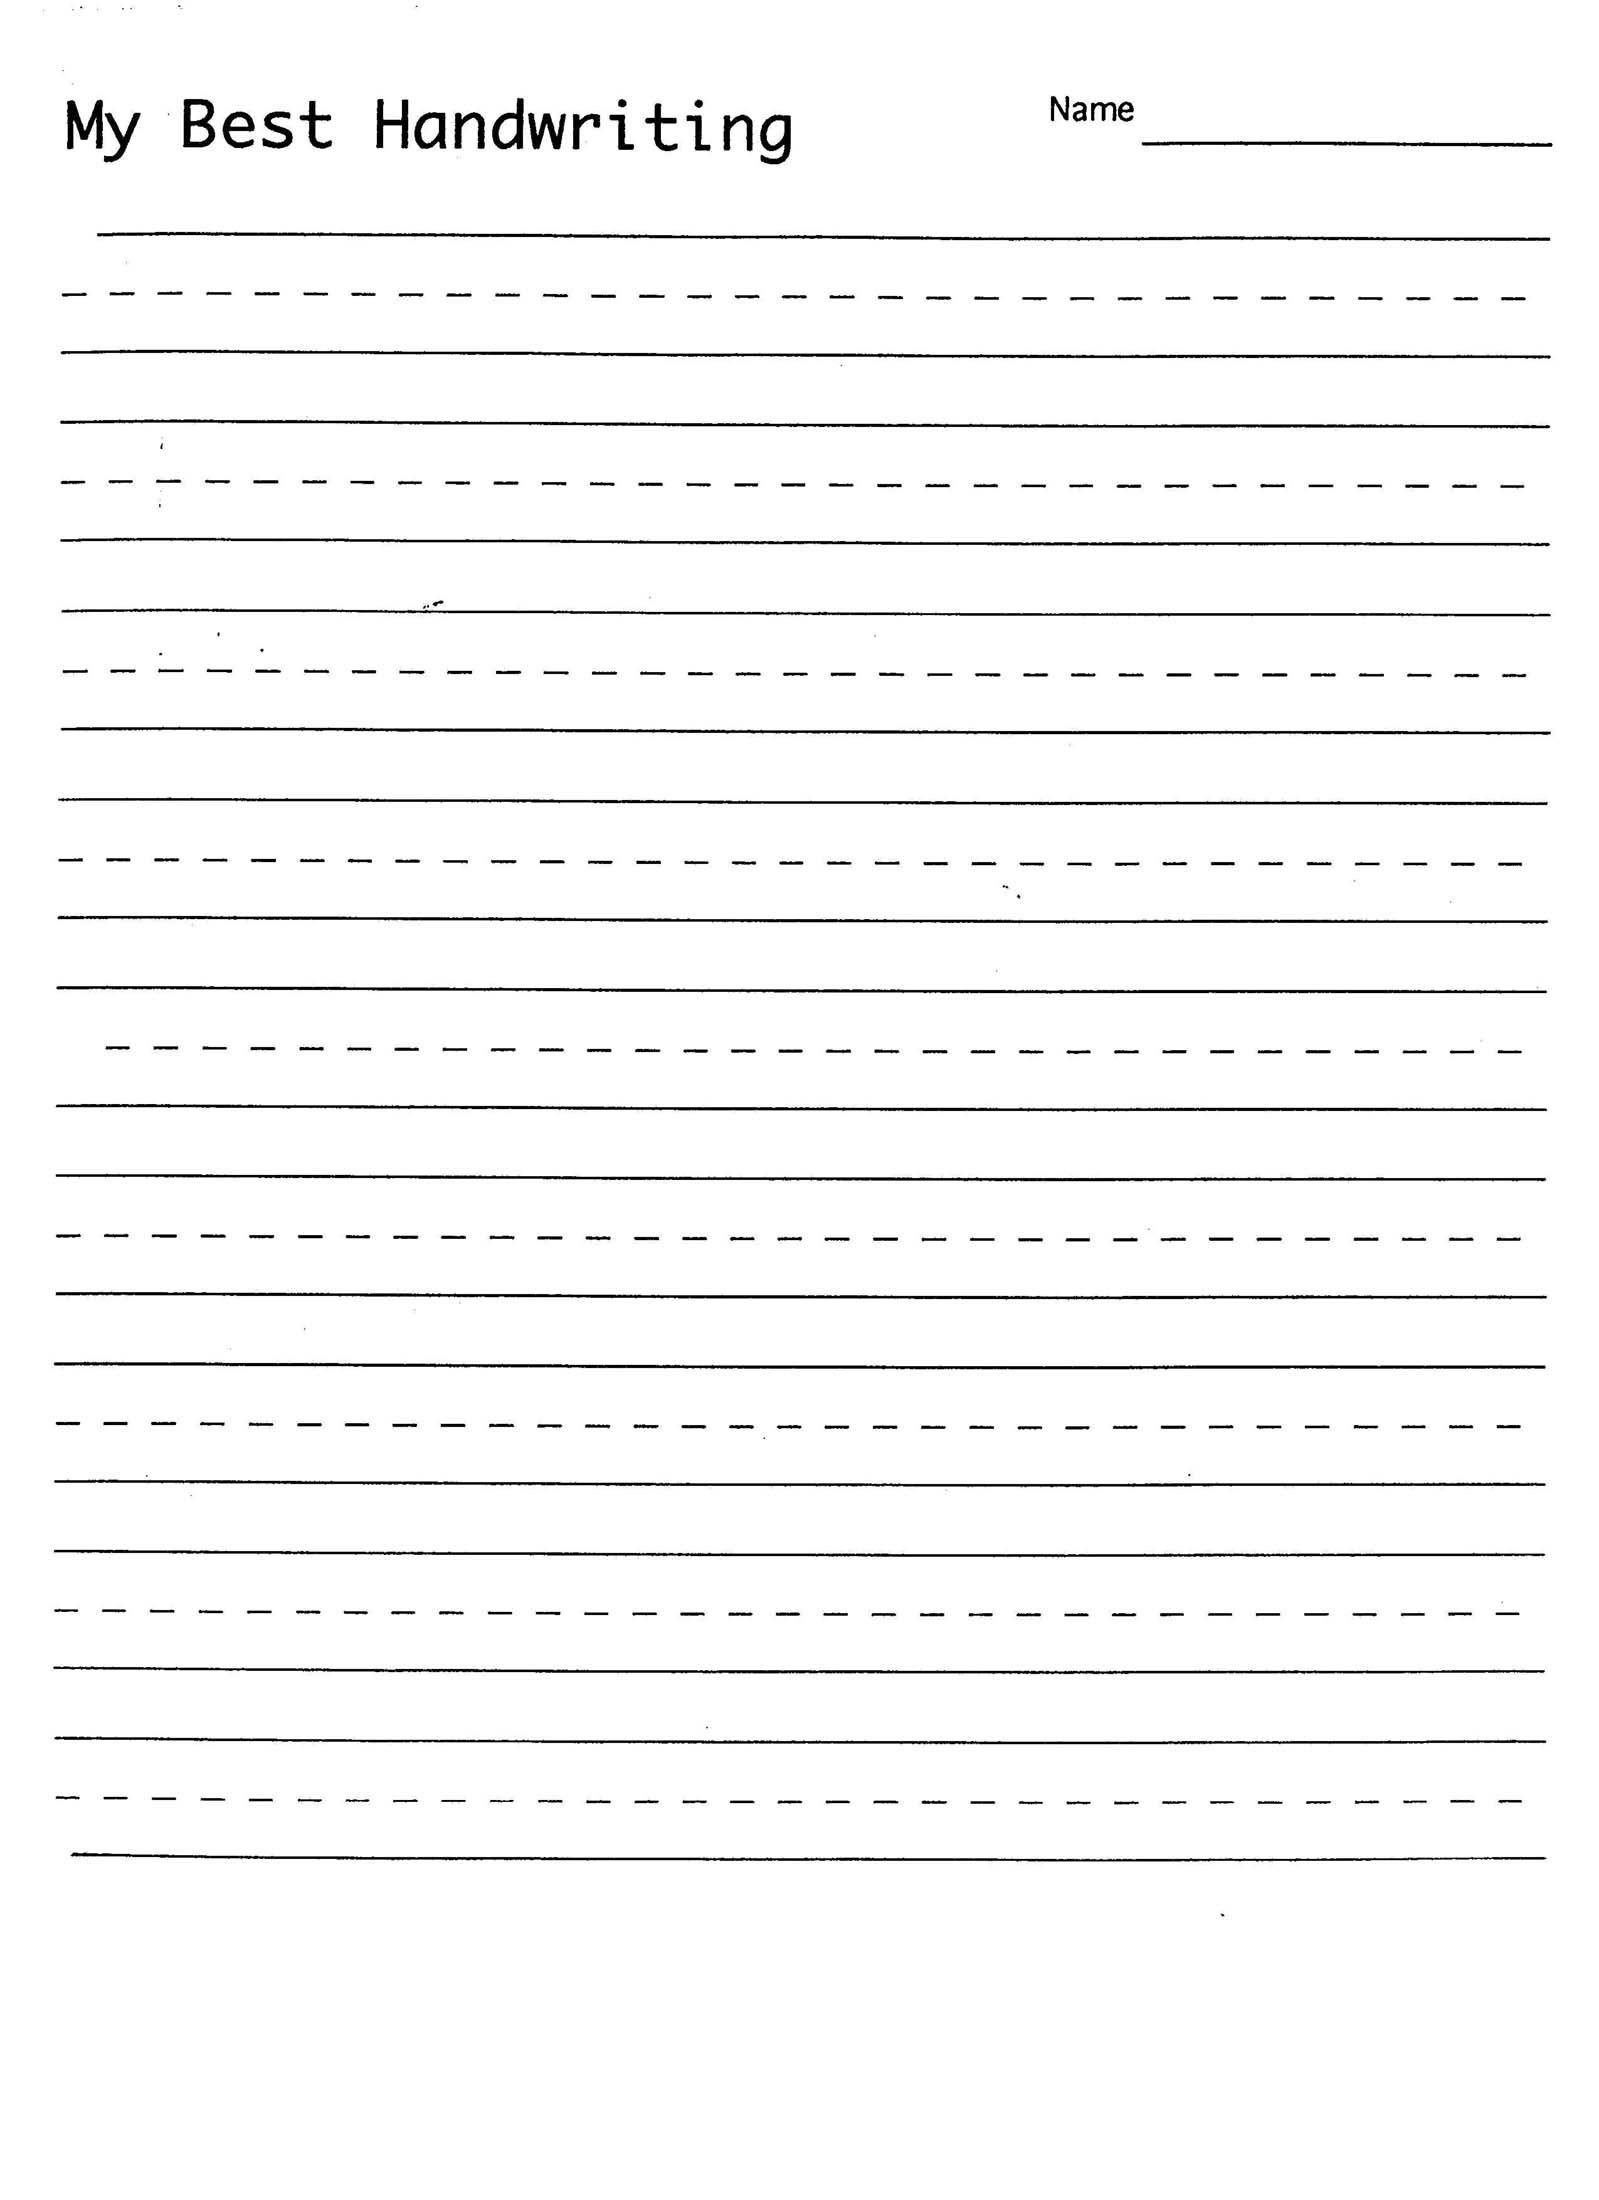 Blank Spelling Practice Worksheets 7 Blank Writing Practice Worksheet Printable In 2020